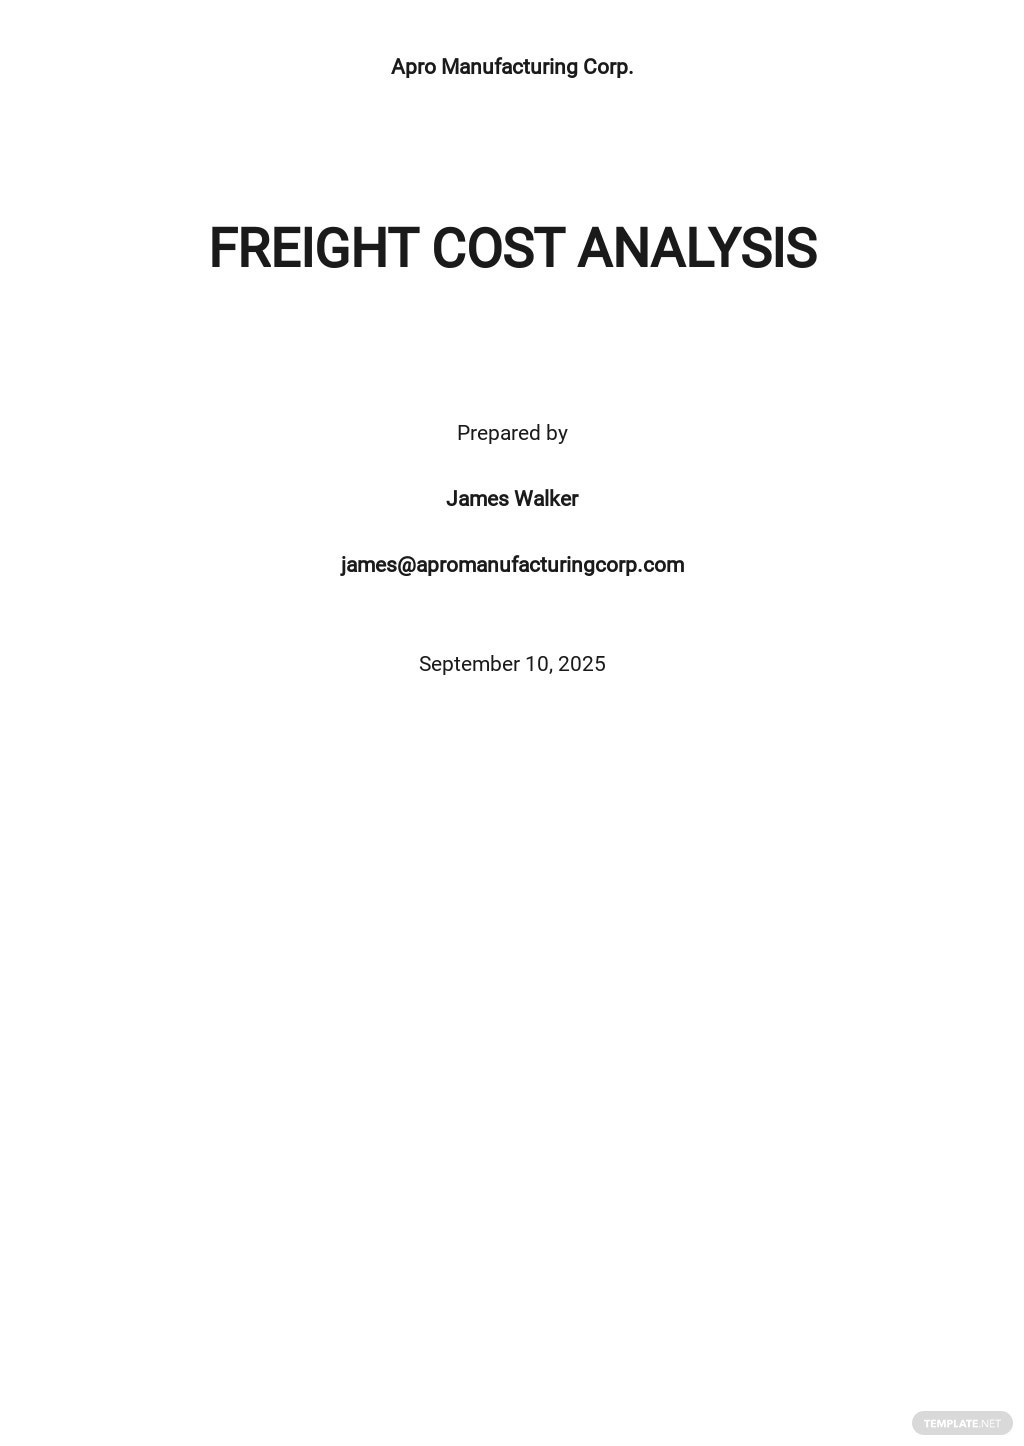 Freight Cost Analysis Template.jpe